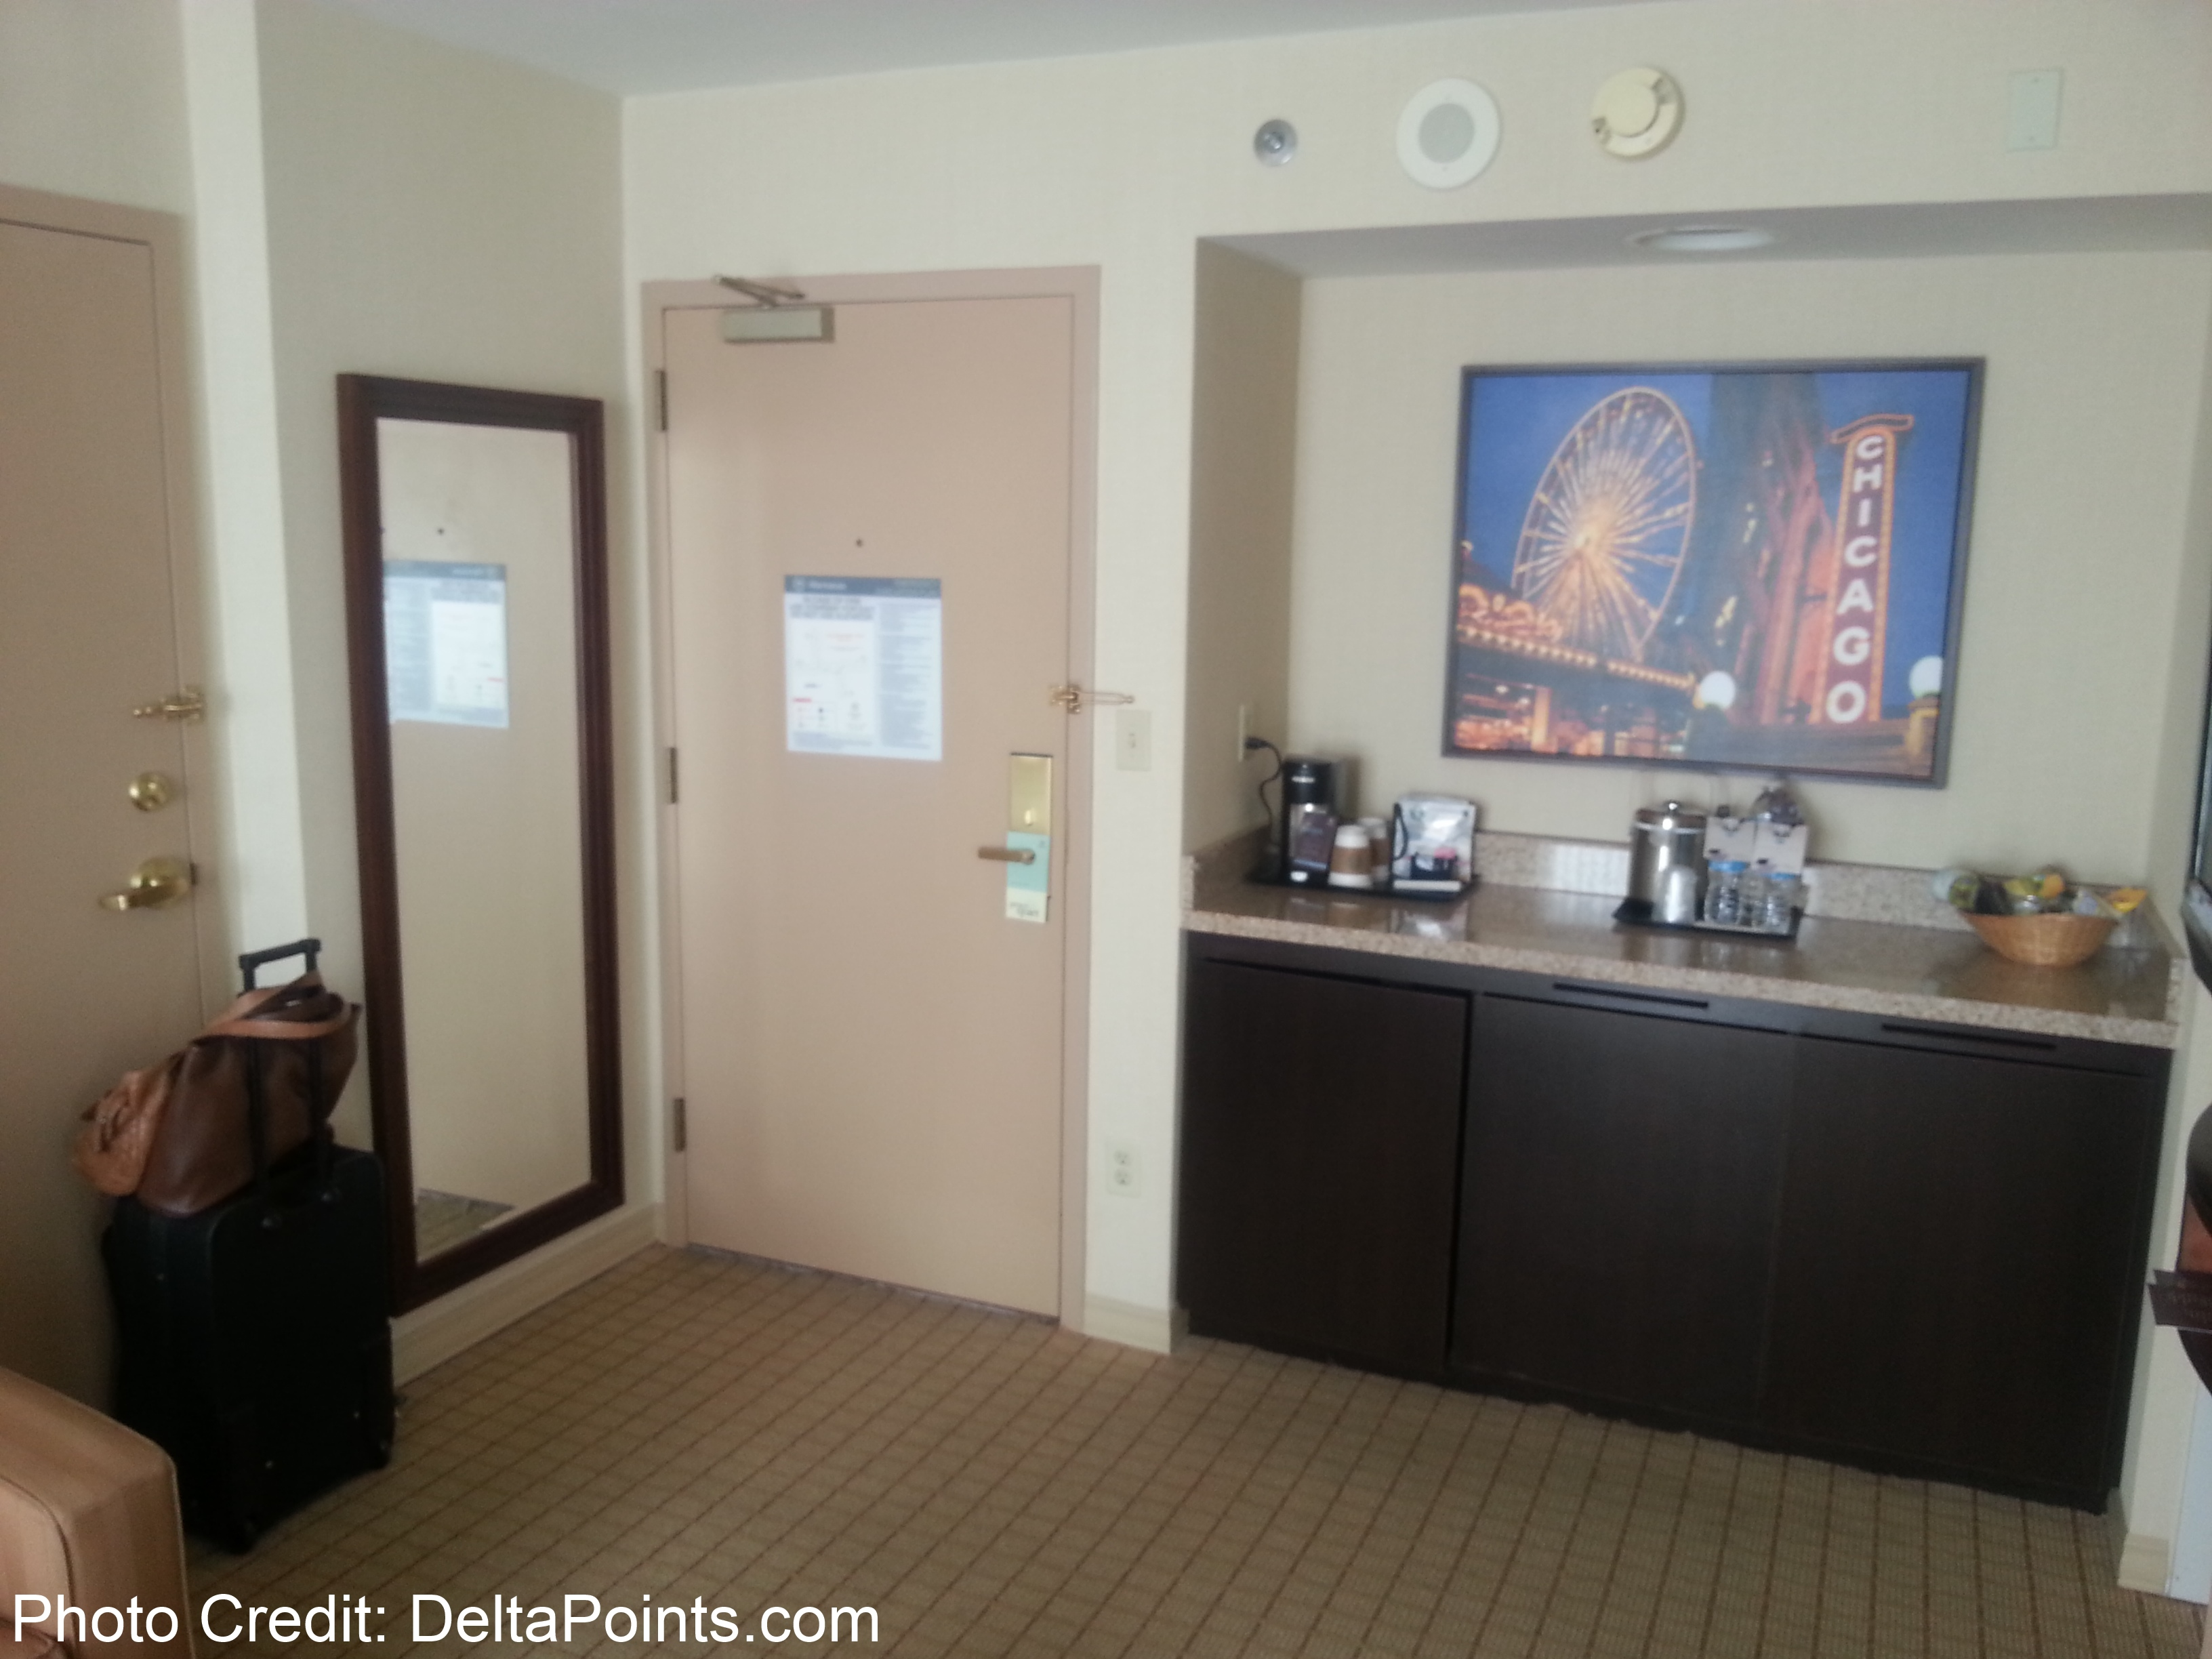 Another visit to the SPG Sheraton Suites Chicago Elk Grove